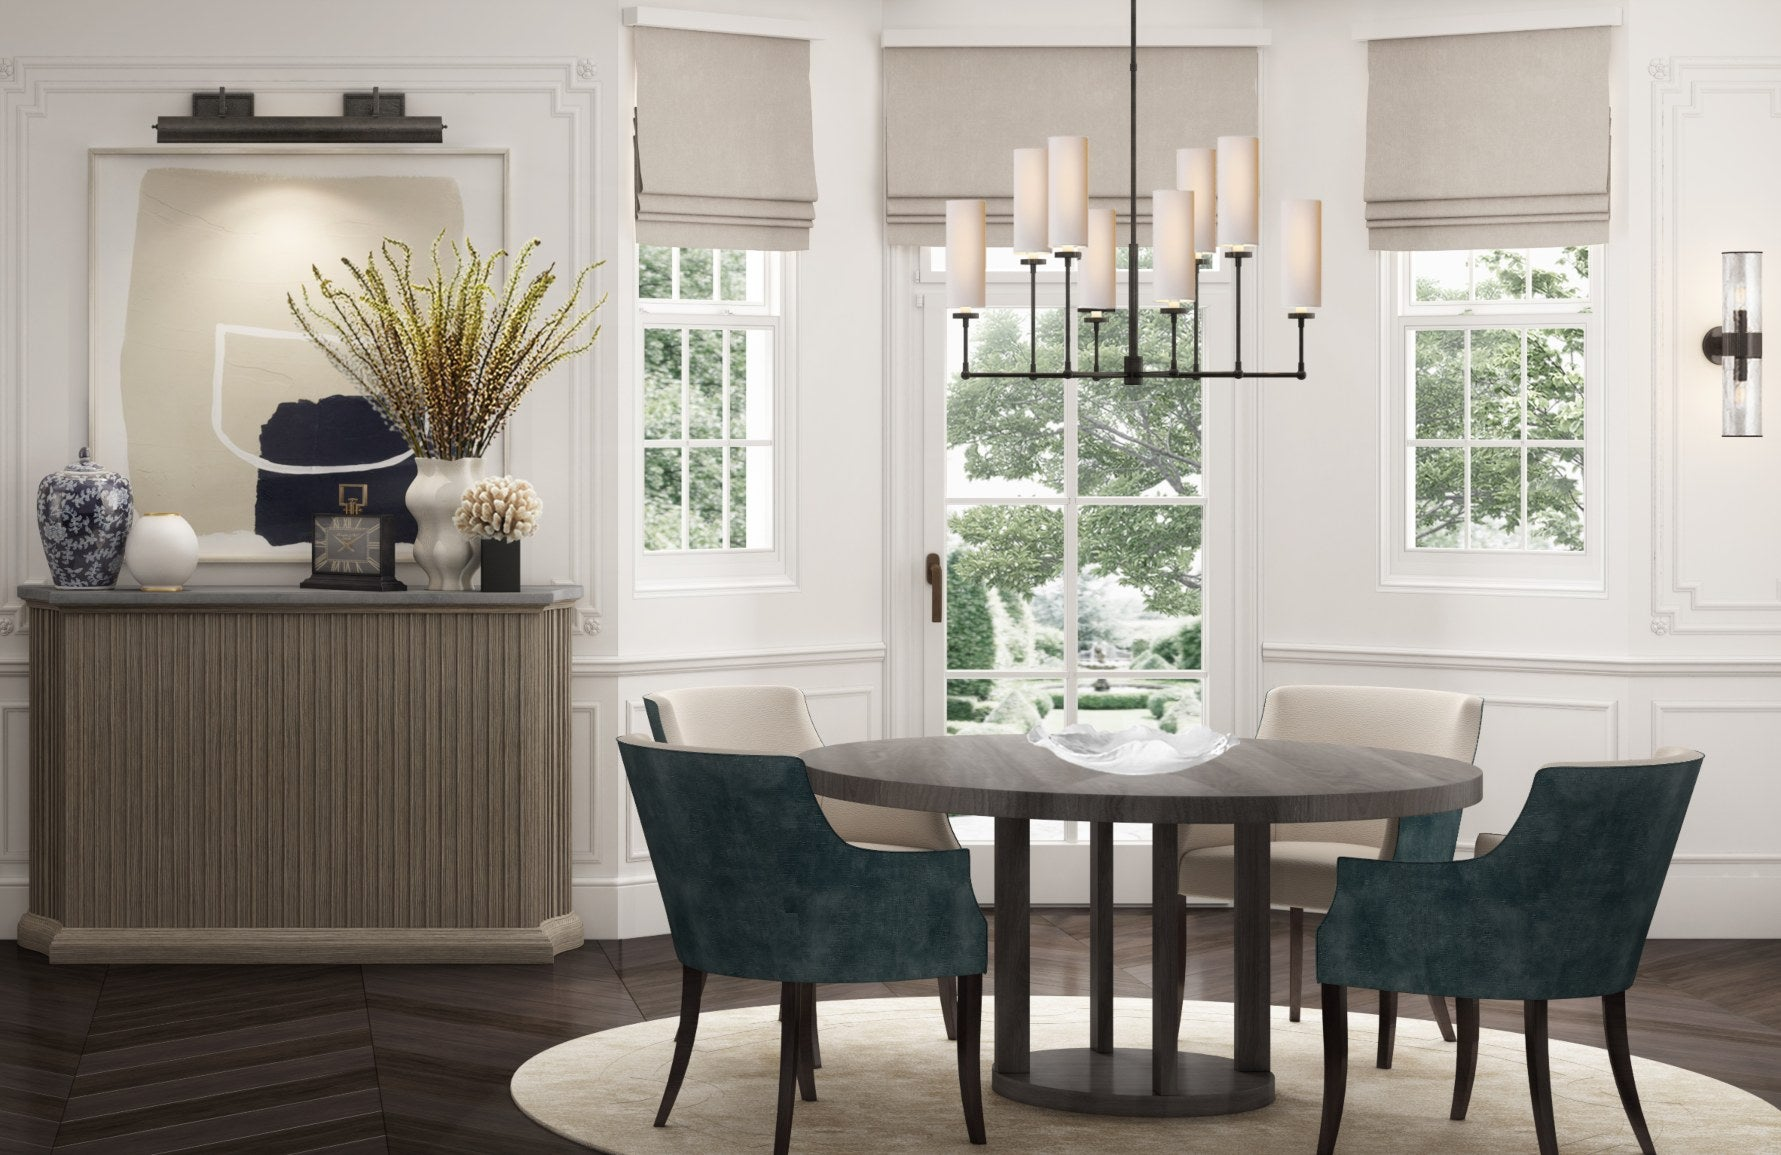 Autumn Winter 2019 Collection | Surrey Lookbook | Luxury Kitchen Dining Room | LuxDeco.com